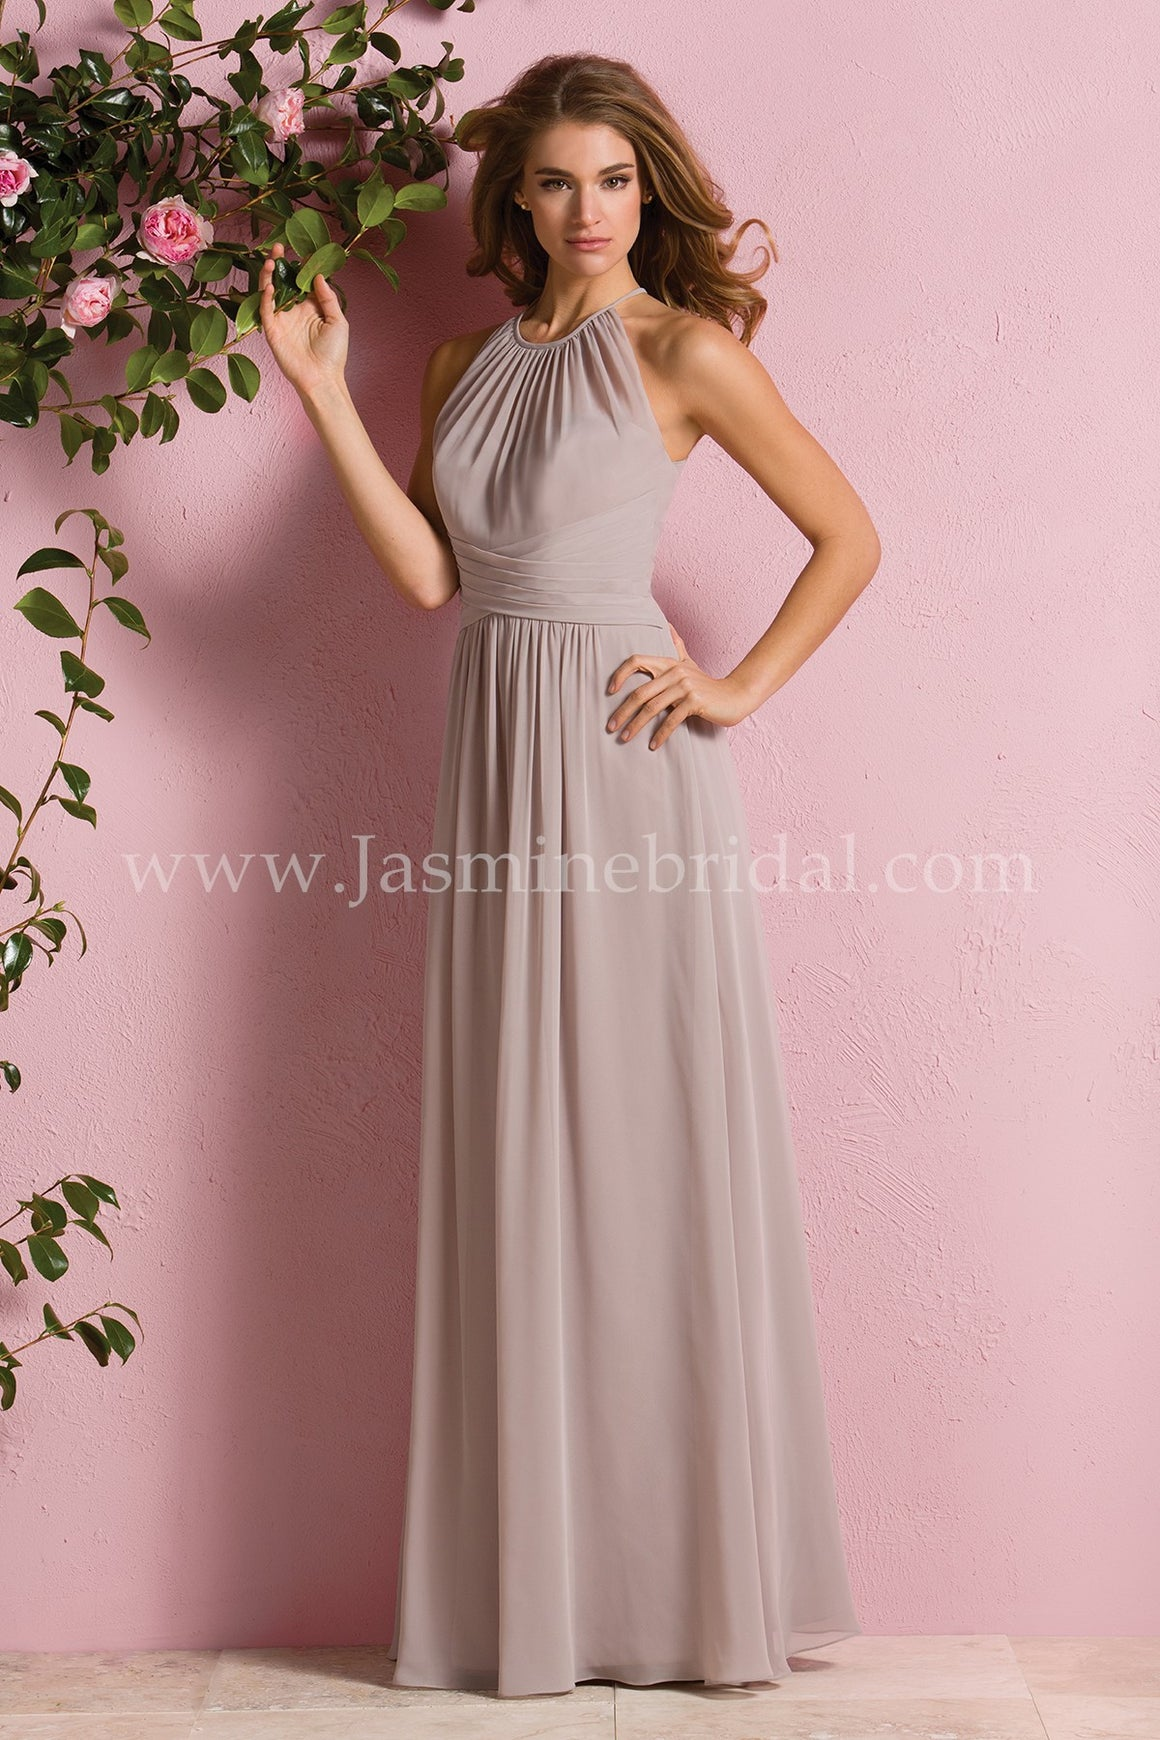 Poly Chiffon A-Line Halter Dress - Available Long or Short  In Store ONLY- Several Colors - Sizes 00-34  - Also Available in Maternity 04-28 -